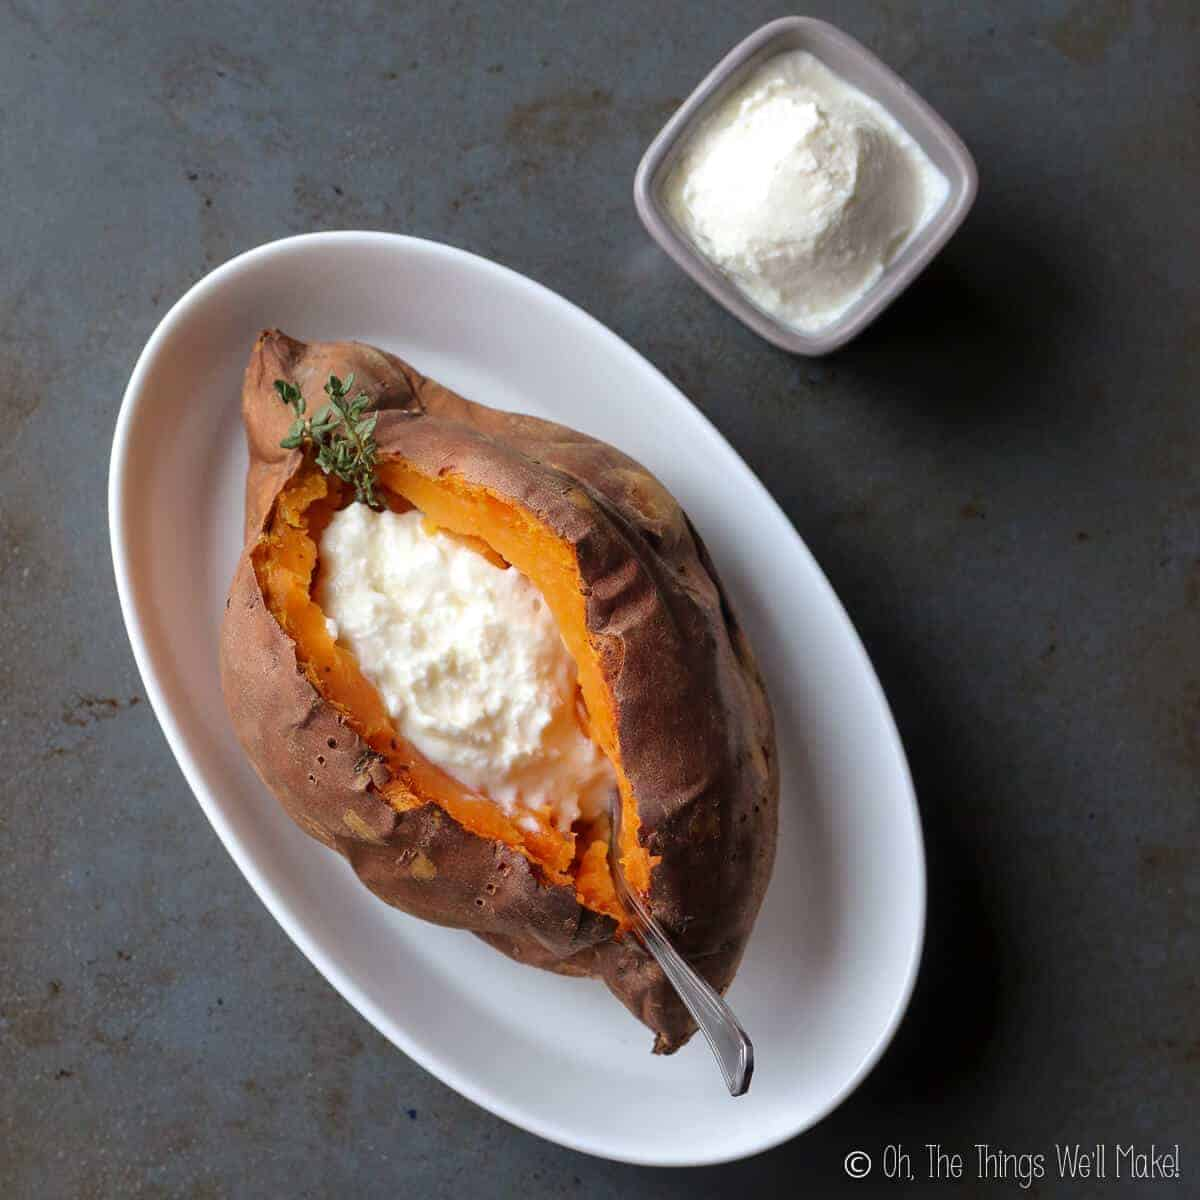 Overhead view of homemade kefir sour cream in a baked sweet potato